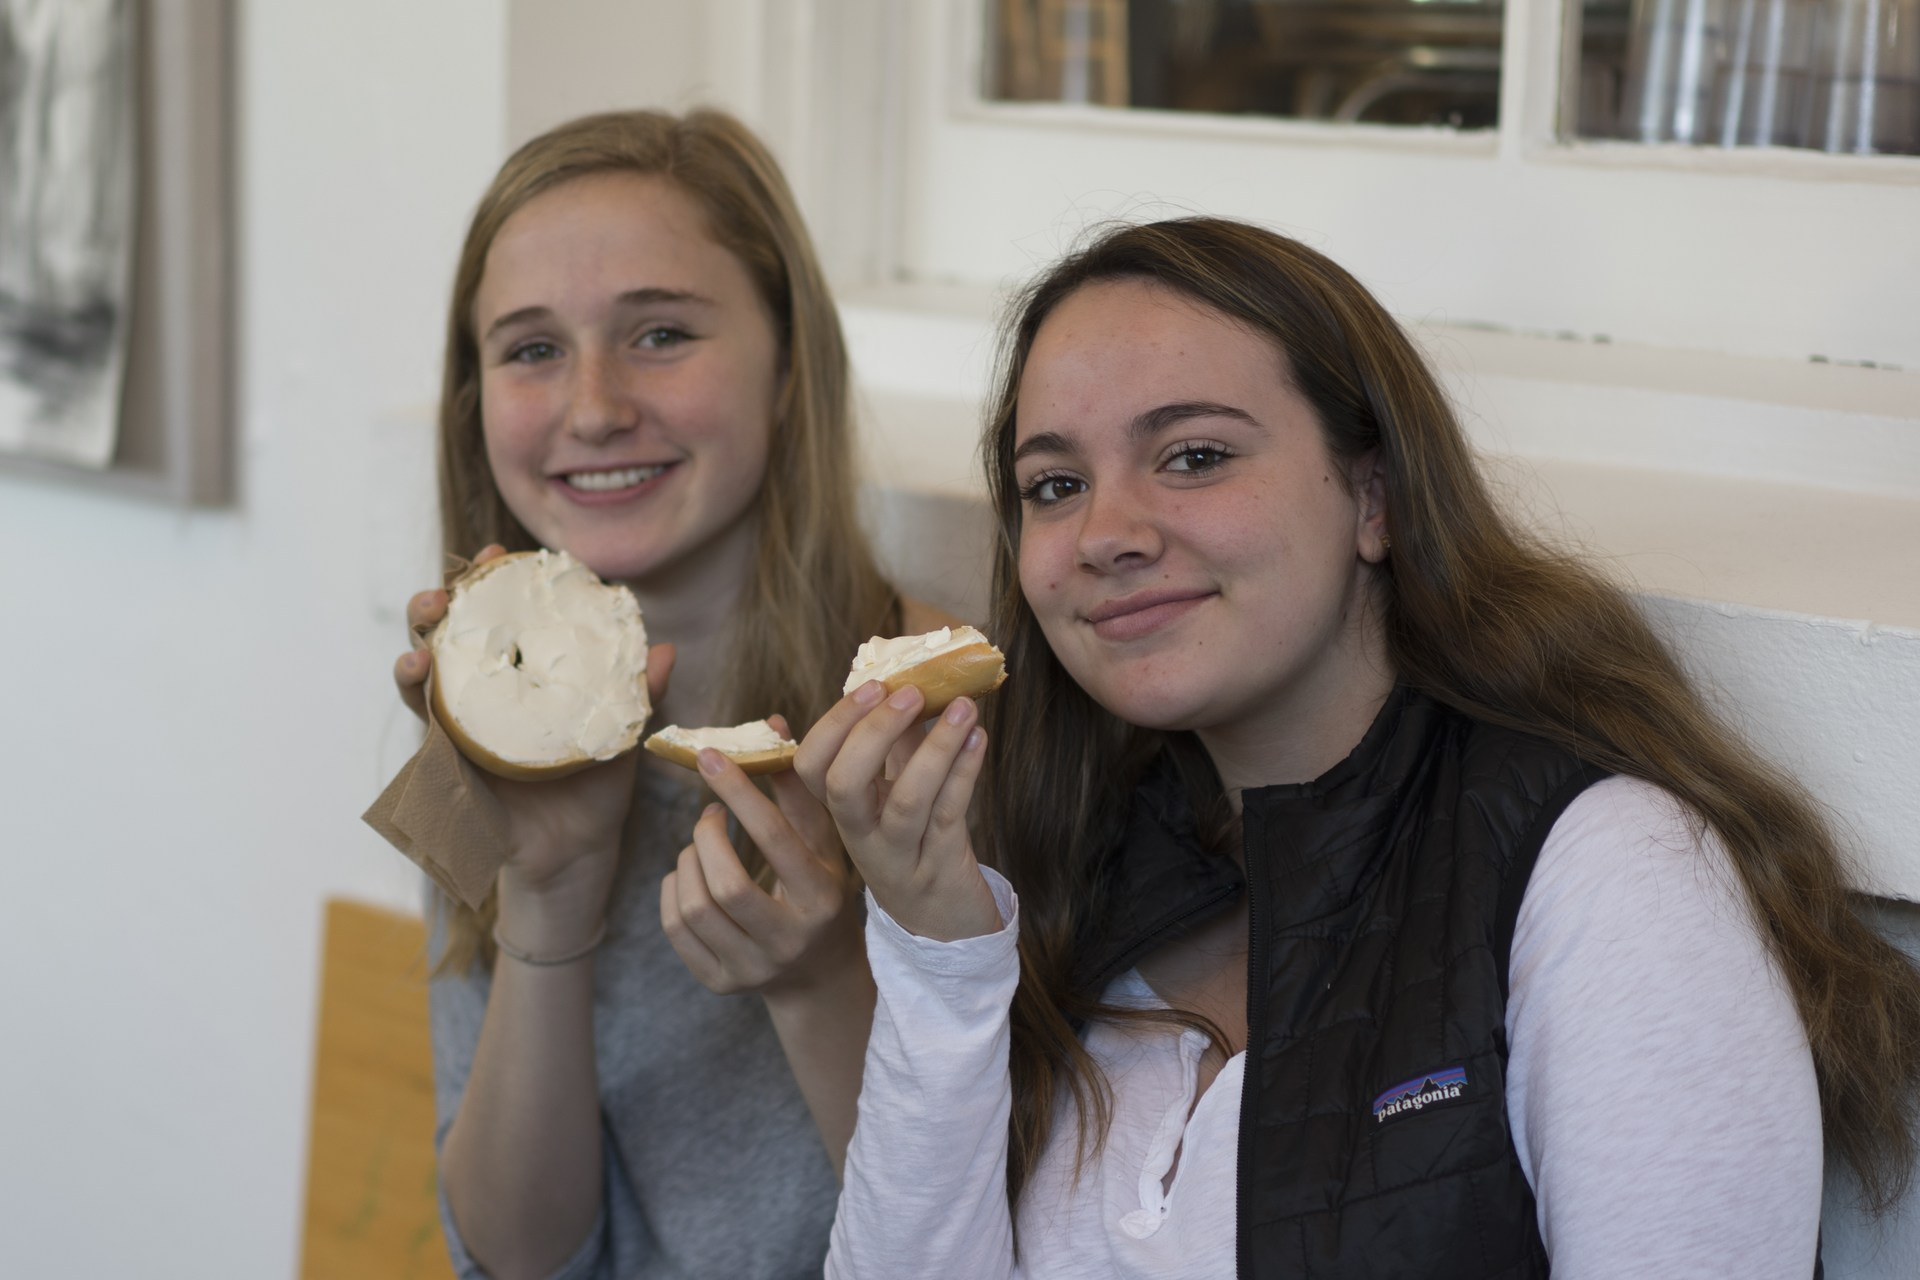 students with bagels